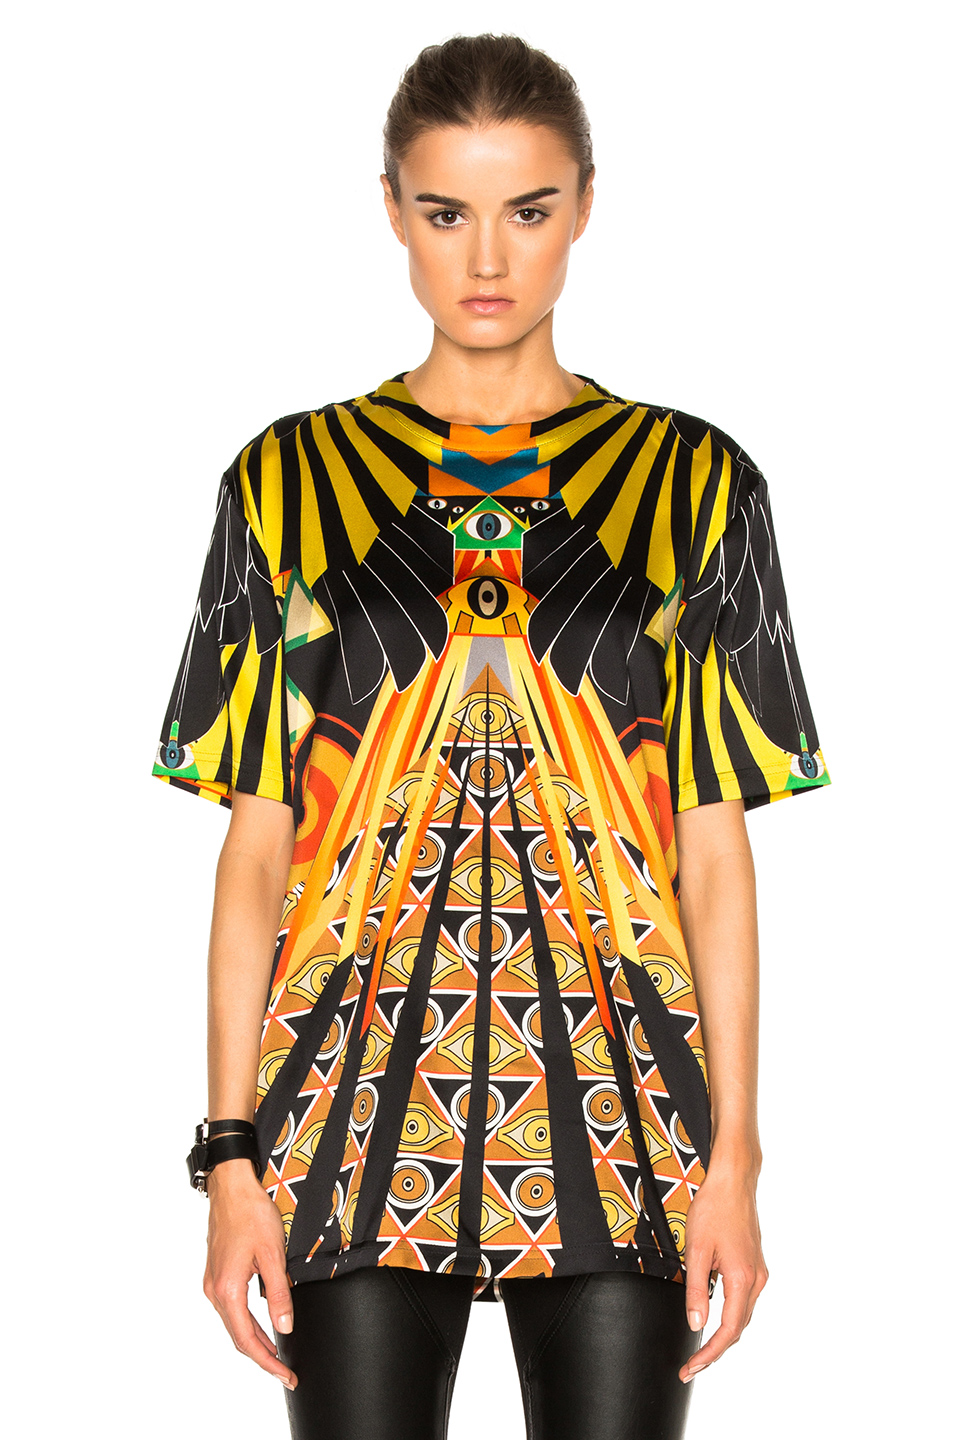 Givenchy Optical Wings Satin Tee in Black,Yellow,Abstract